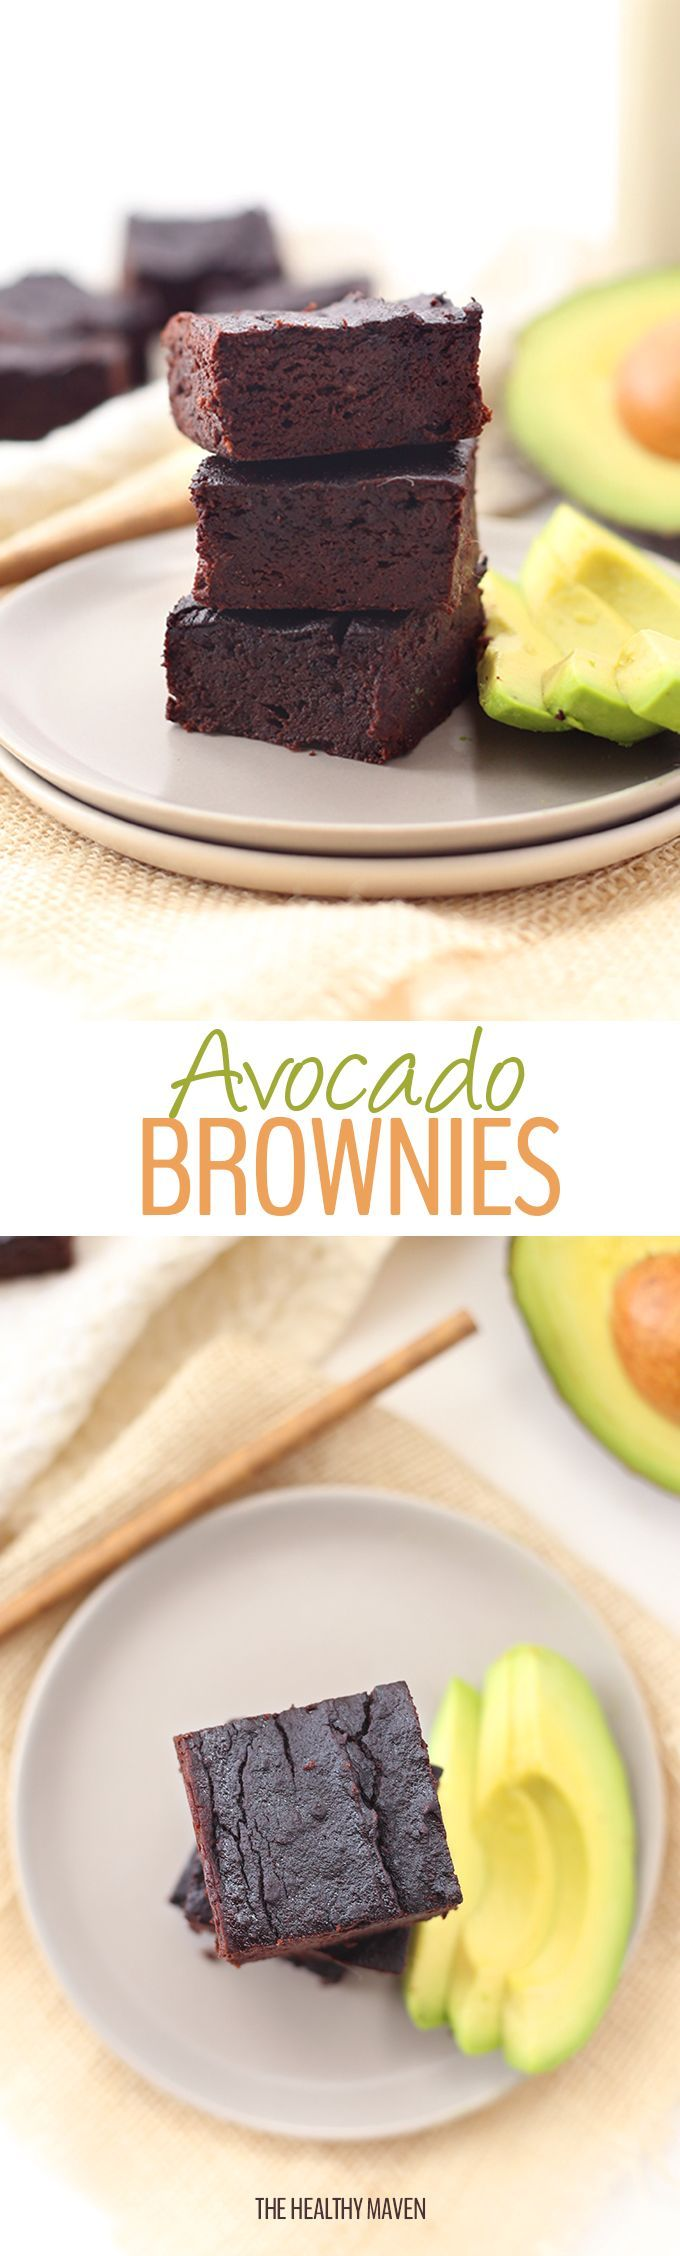 A healthy and delicious recipe for avocado brownies! Replace oil or butter with heart-healthy avocados for a delicious and nutritious dessert. | healthy recipe ideas @xhealthyrecipex |